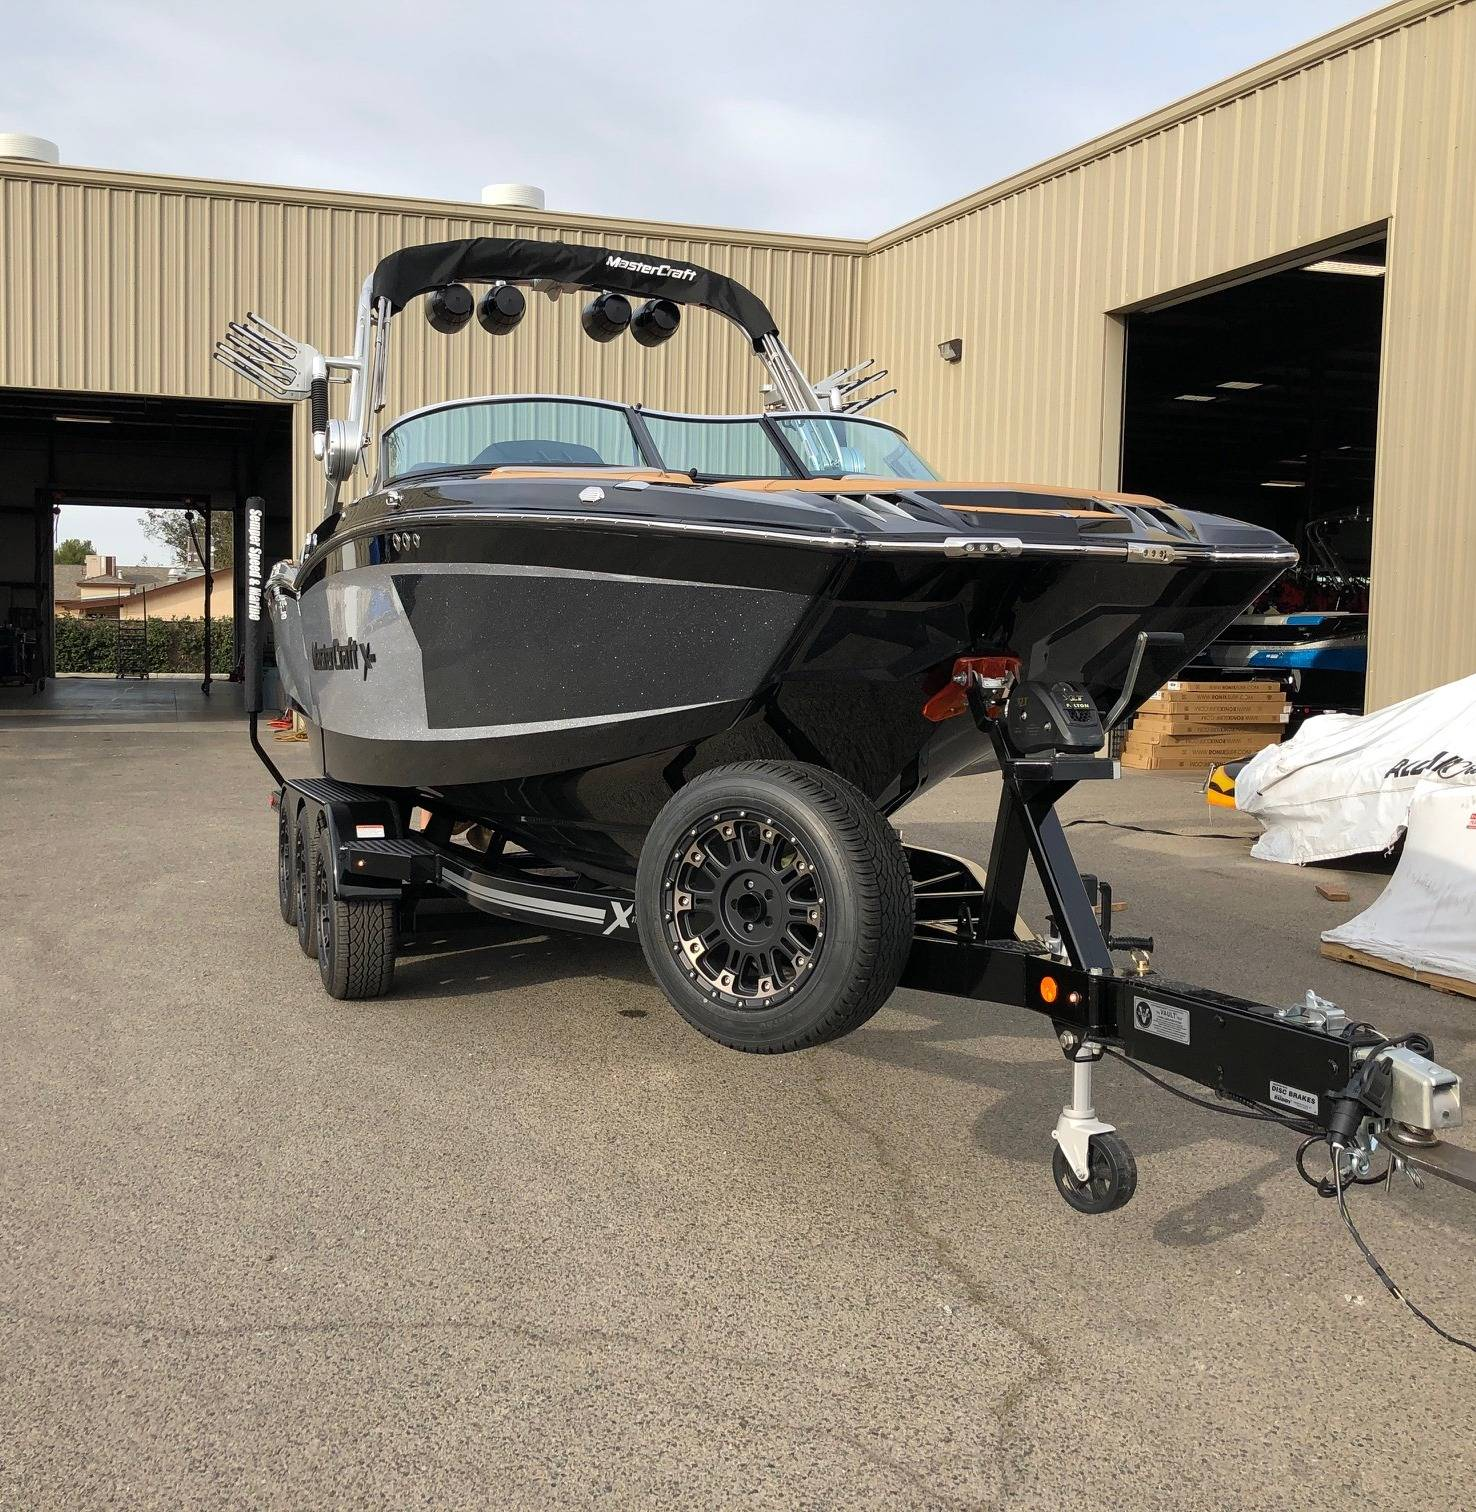 2020 Mastercraft XStar in Madera, California - Photo 3